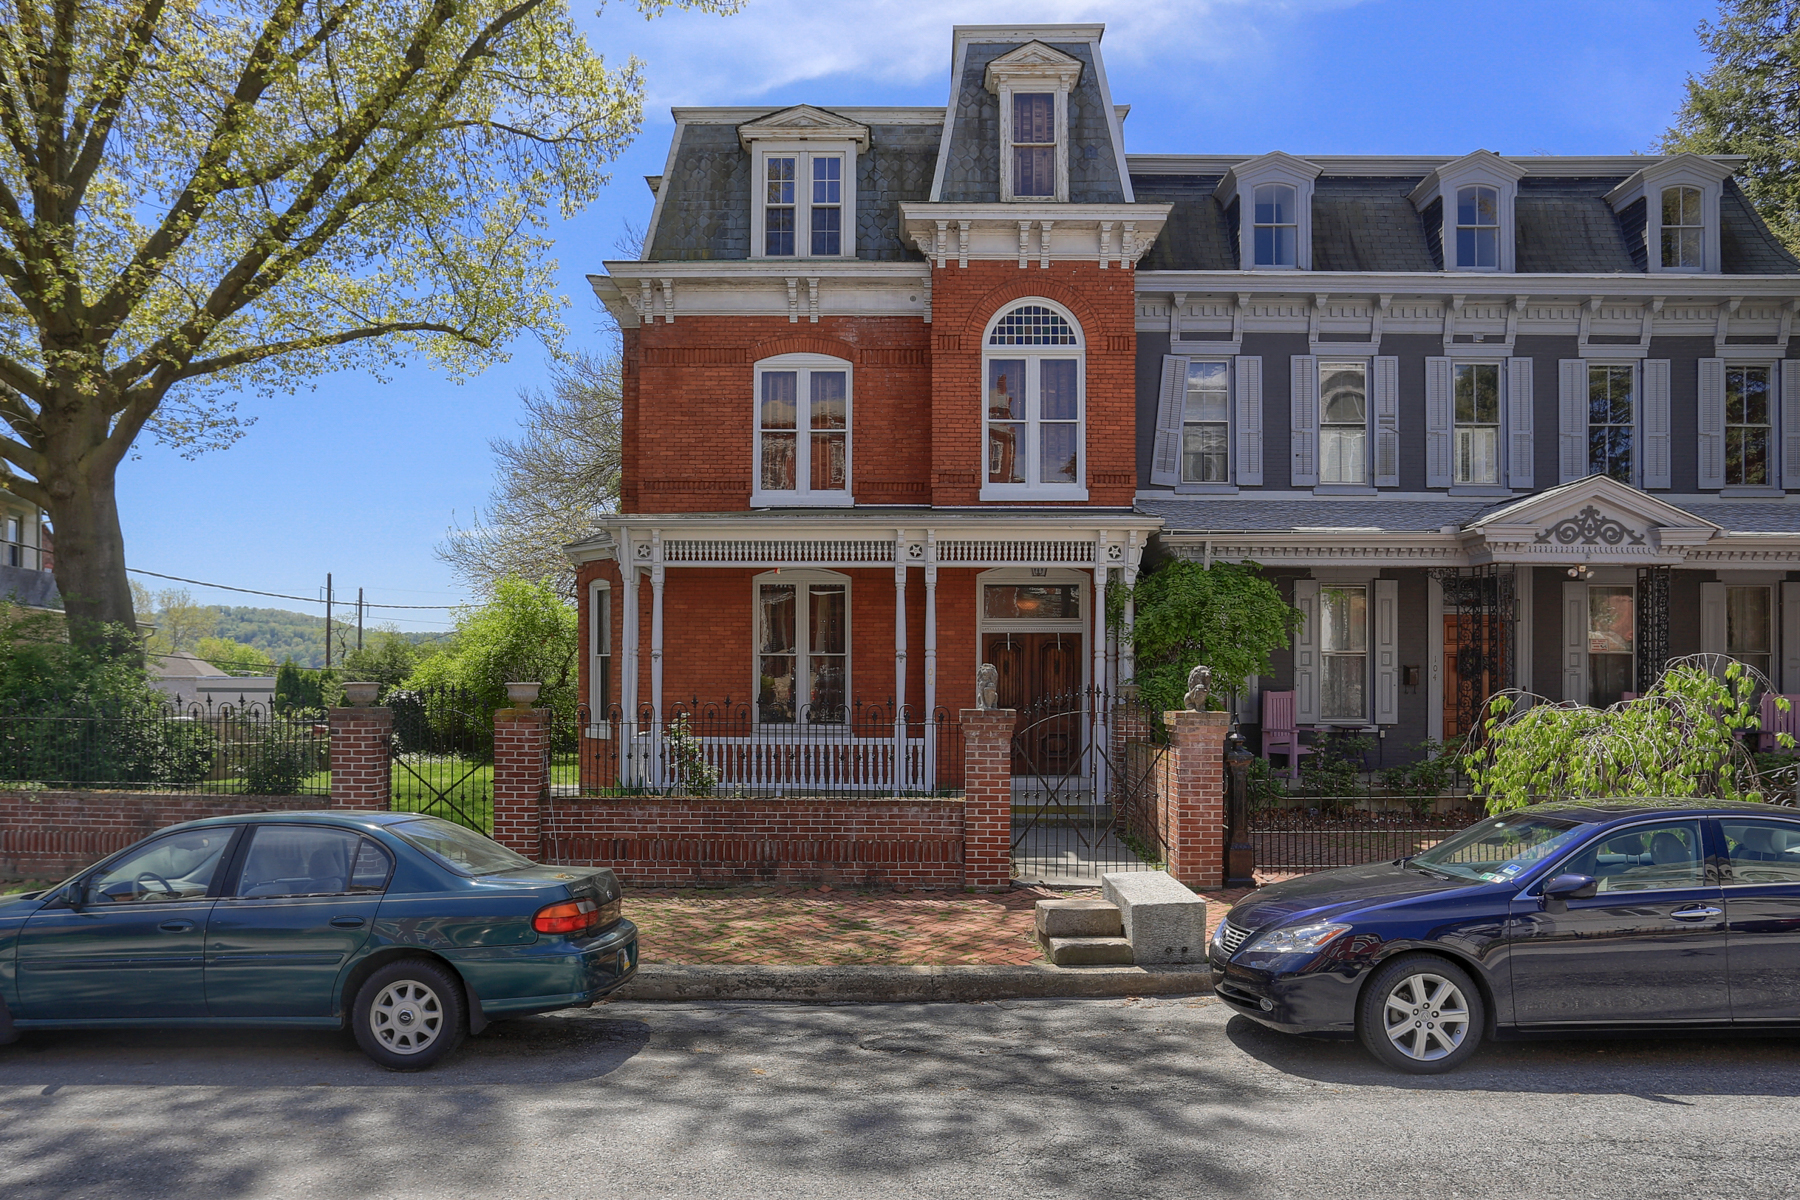 Casa Unifamiliar por un Venta en 106 South Second Street 106 South Second Street Columbia, Pennsylvania 17512 Estados Unidos